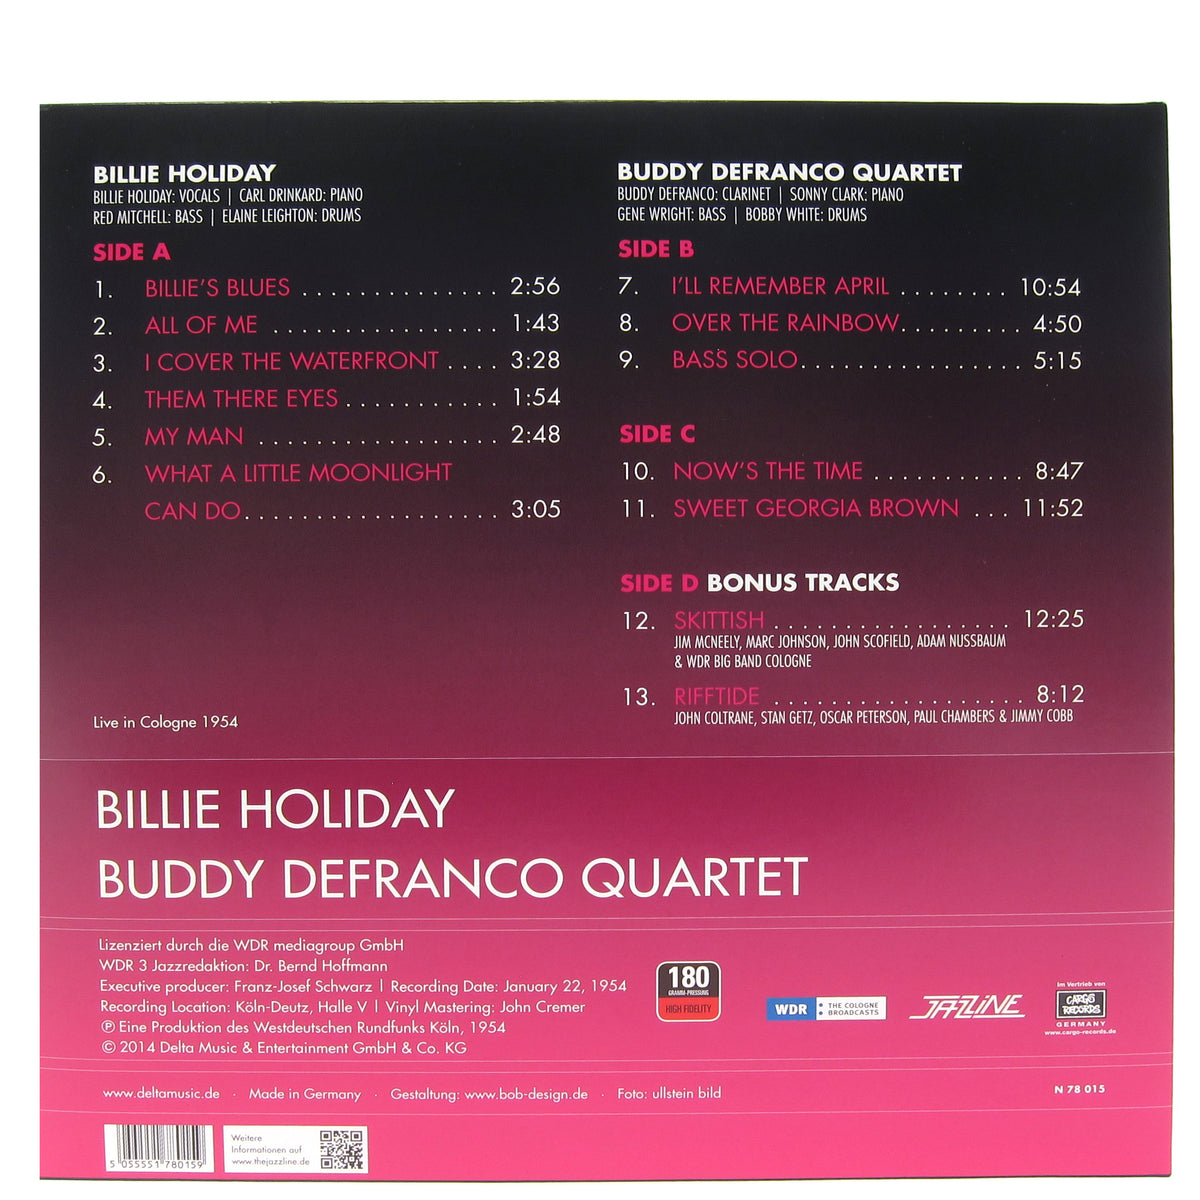 Billie Holiday / Buddy DeFranco Quartet: Live In Cologne 1954 Vinyl LP